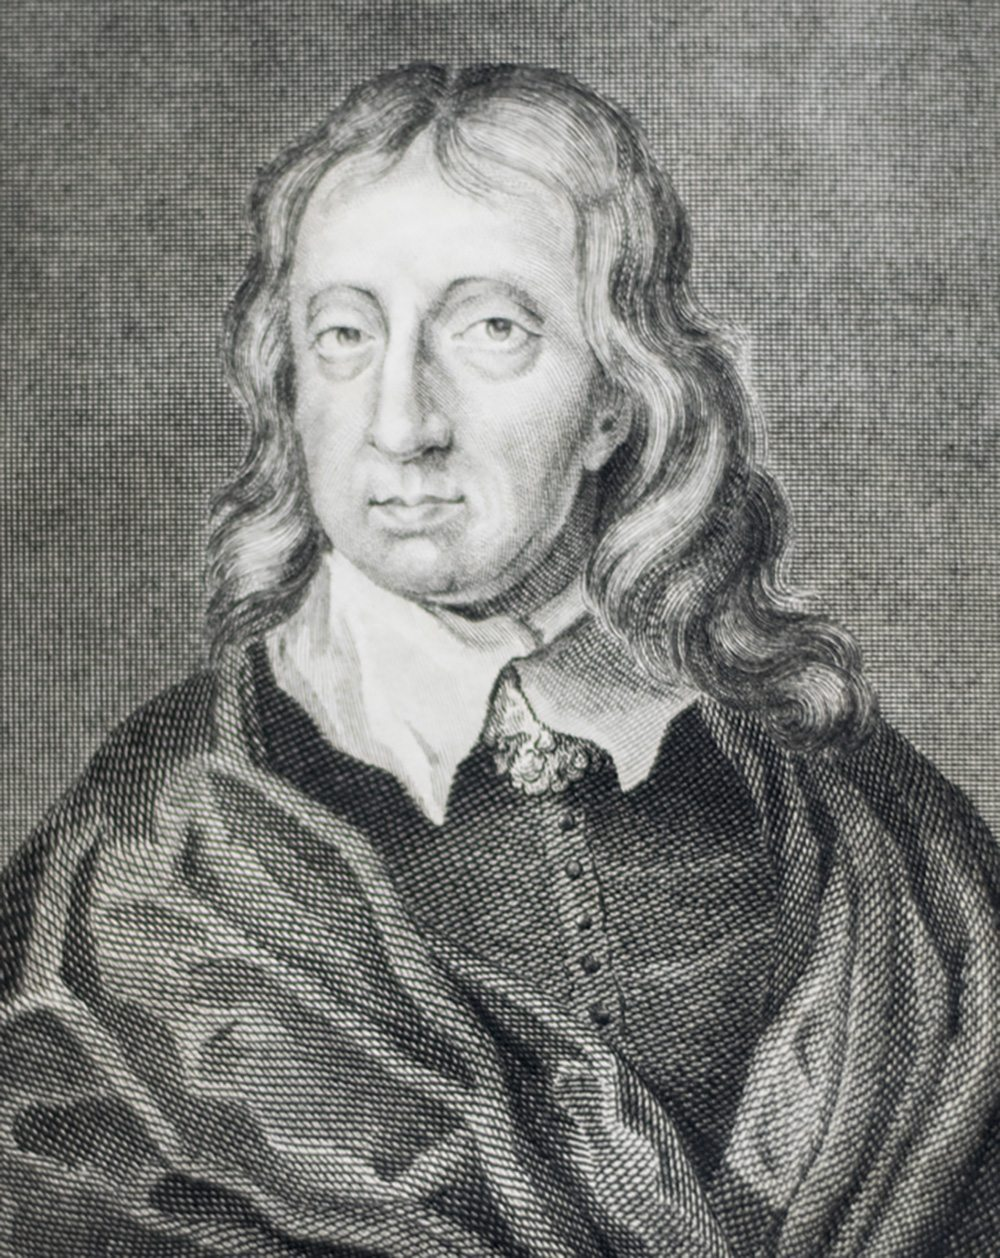 John Milton photo #5344, John Milton image